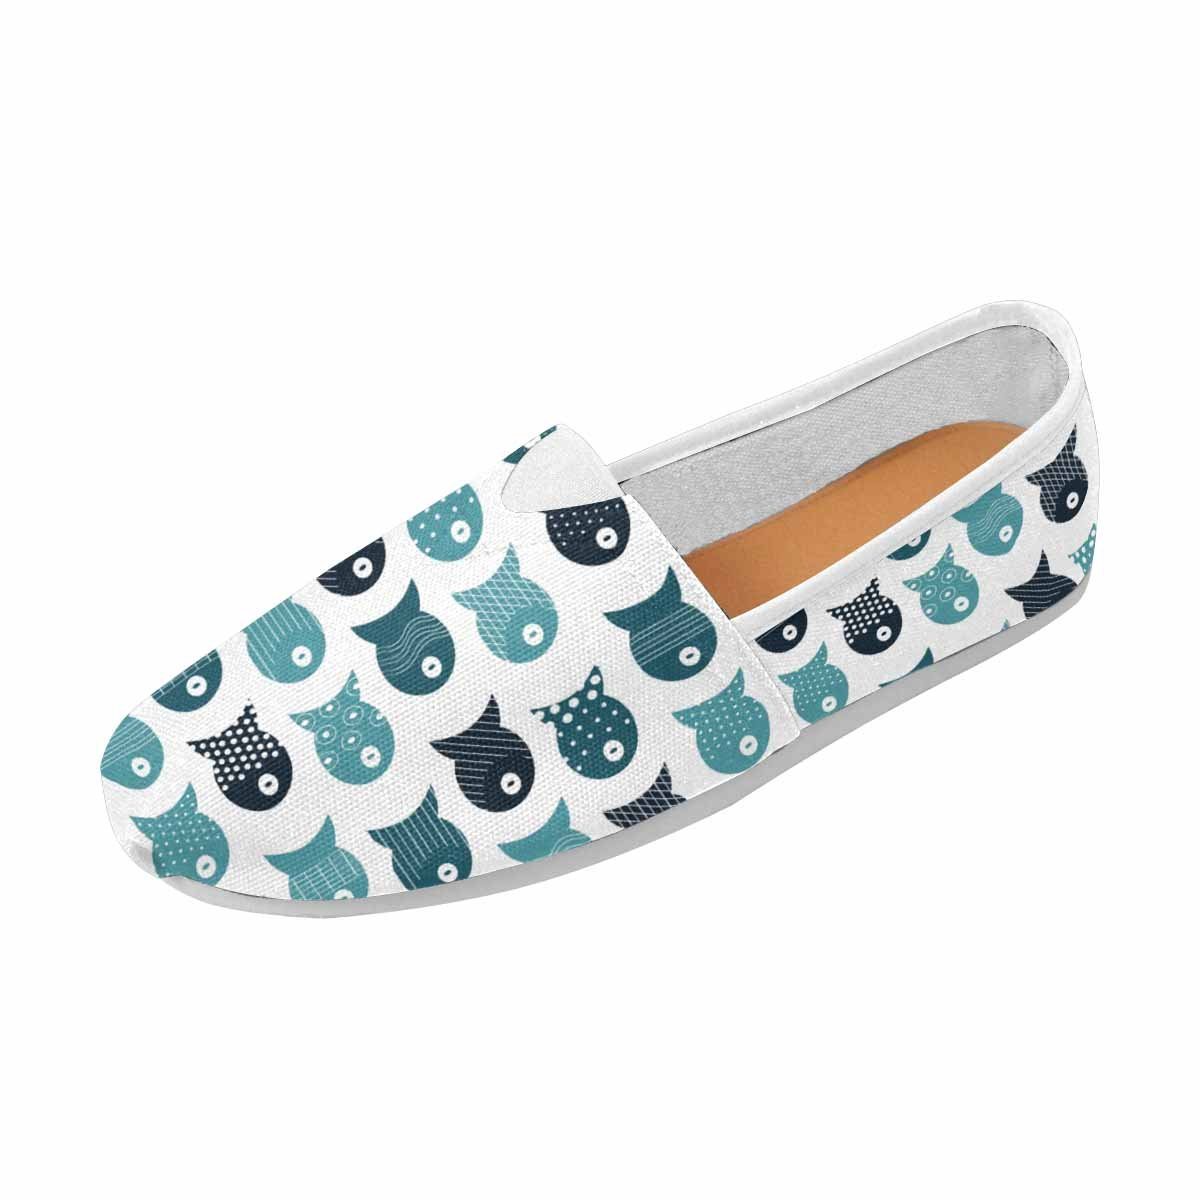 InterestPrint Women's Loafers Classic Casual Canvas Slip On Shoes Flats US10 Pillows, Wallpapers, Cloth, Bags